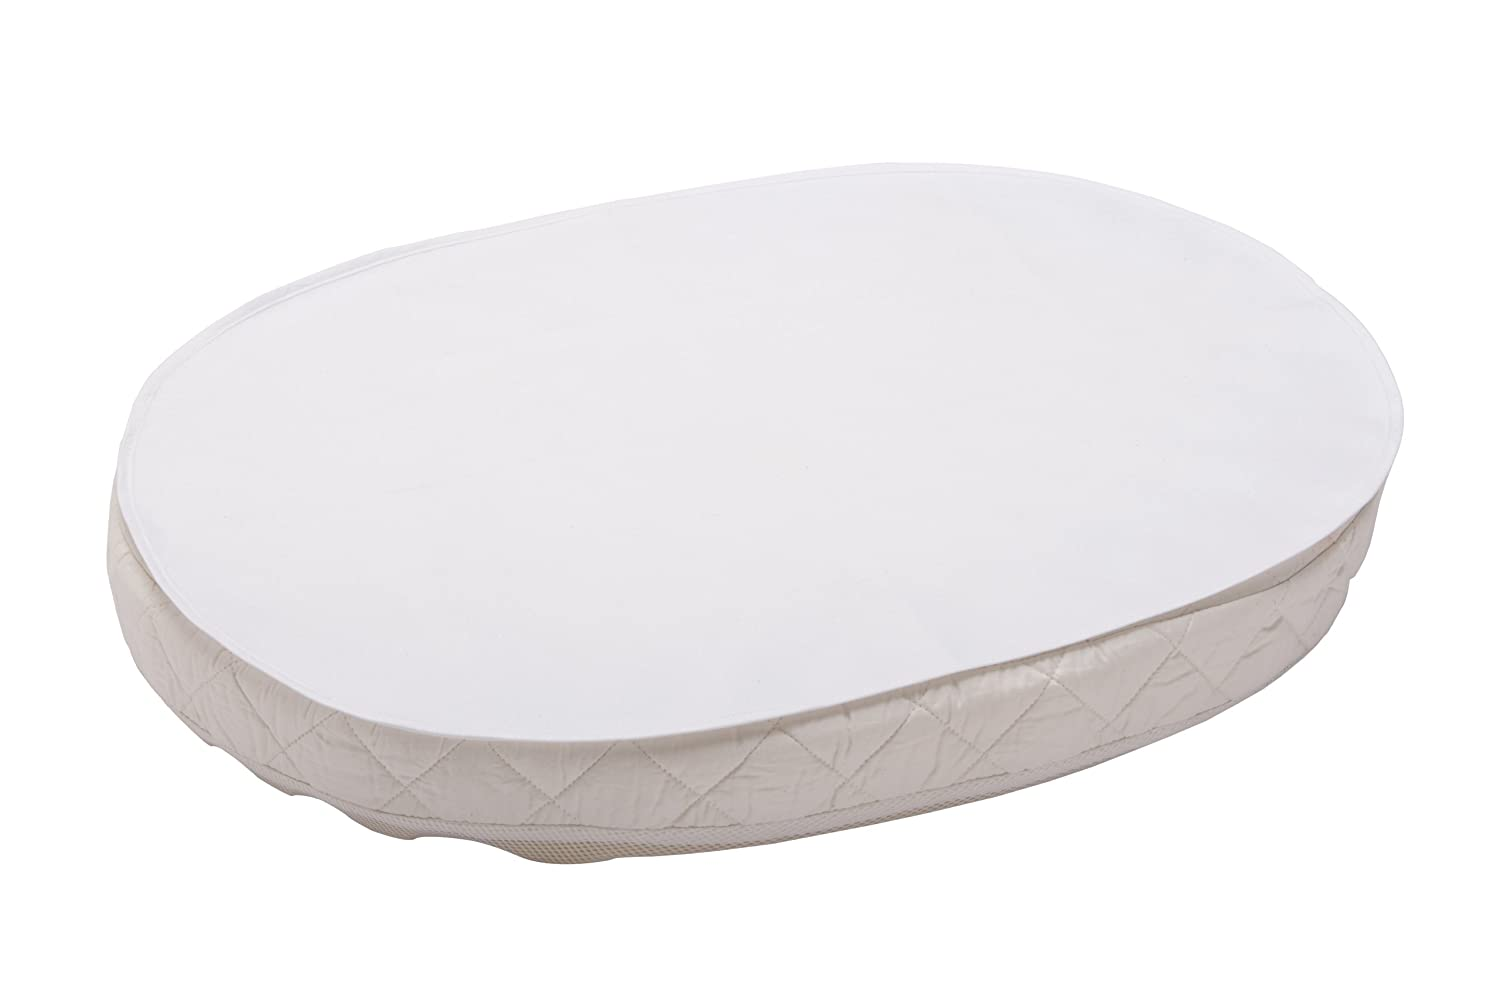 Stokke Sleepi Crib Protection Sheet Oval Sheet in White